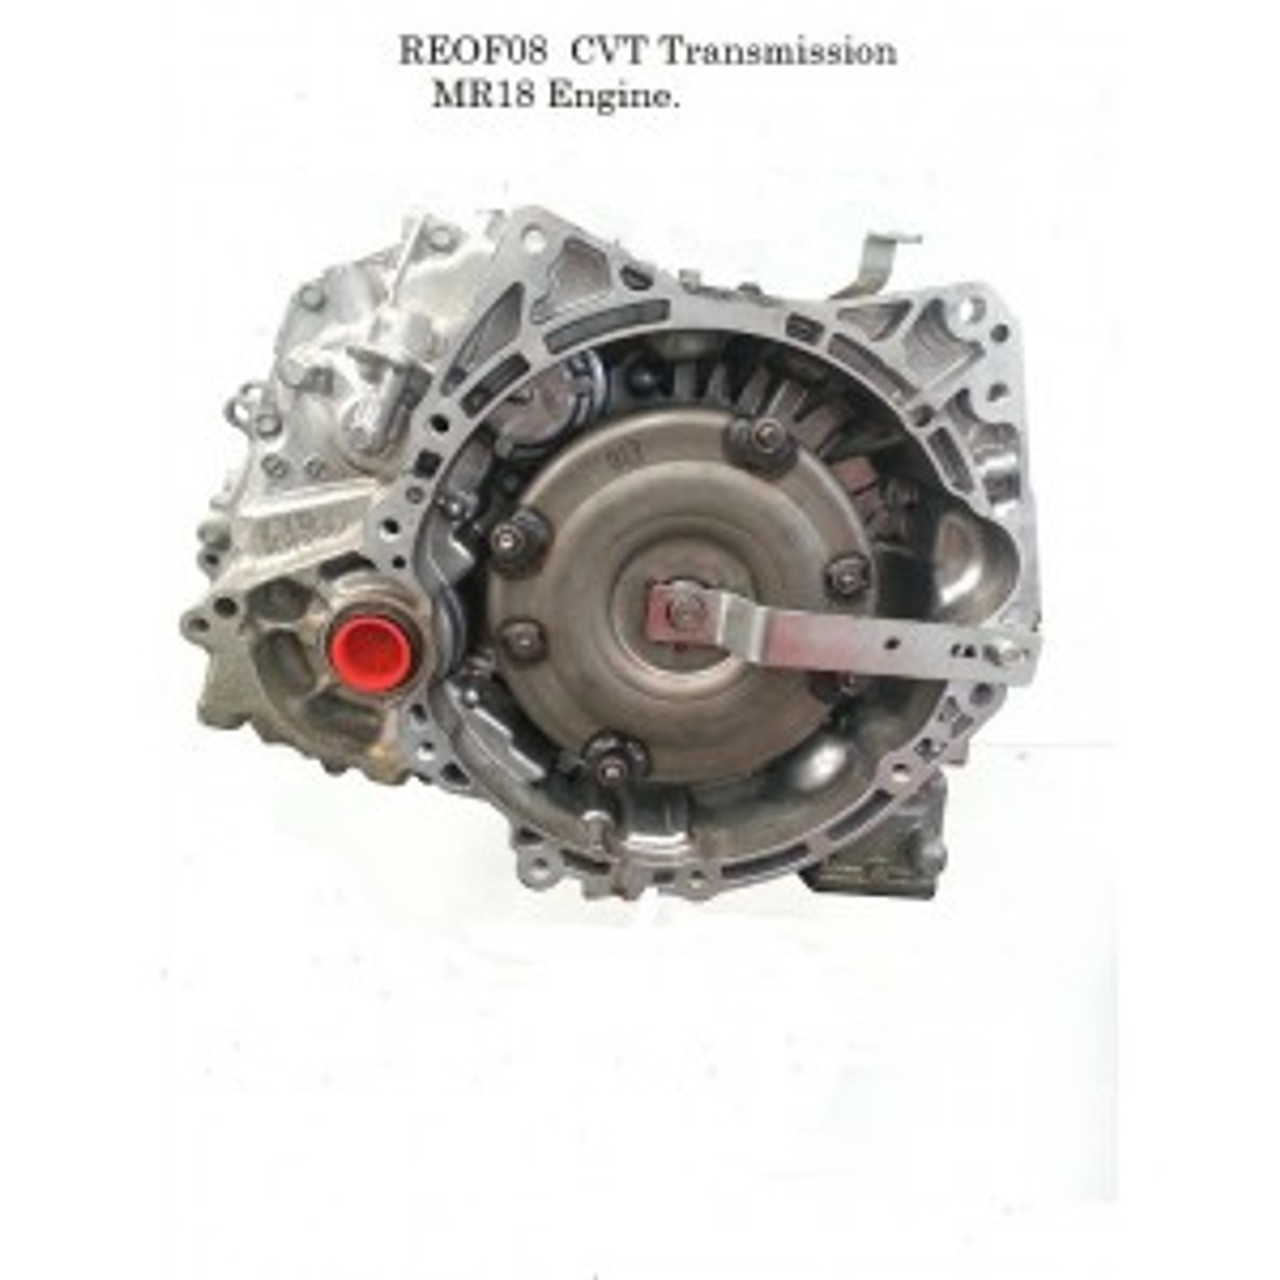 Nissan CVT Transmission REOF08 ( MR18 )